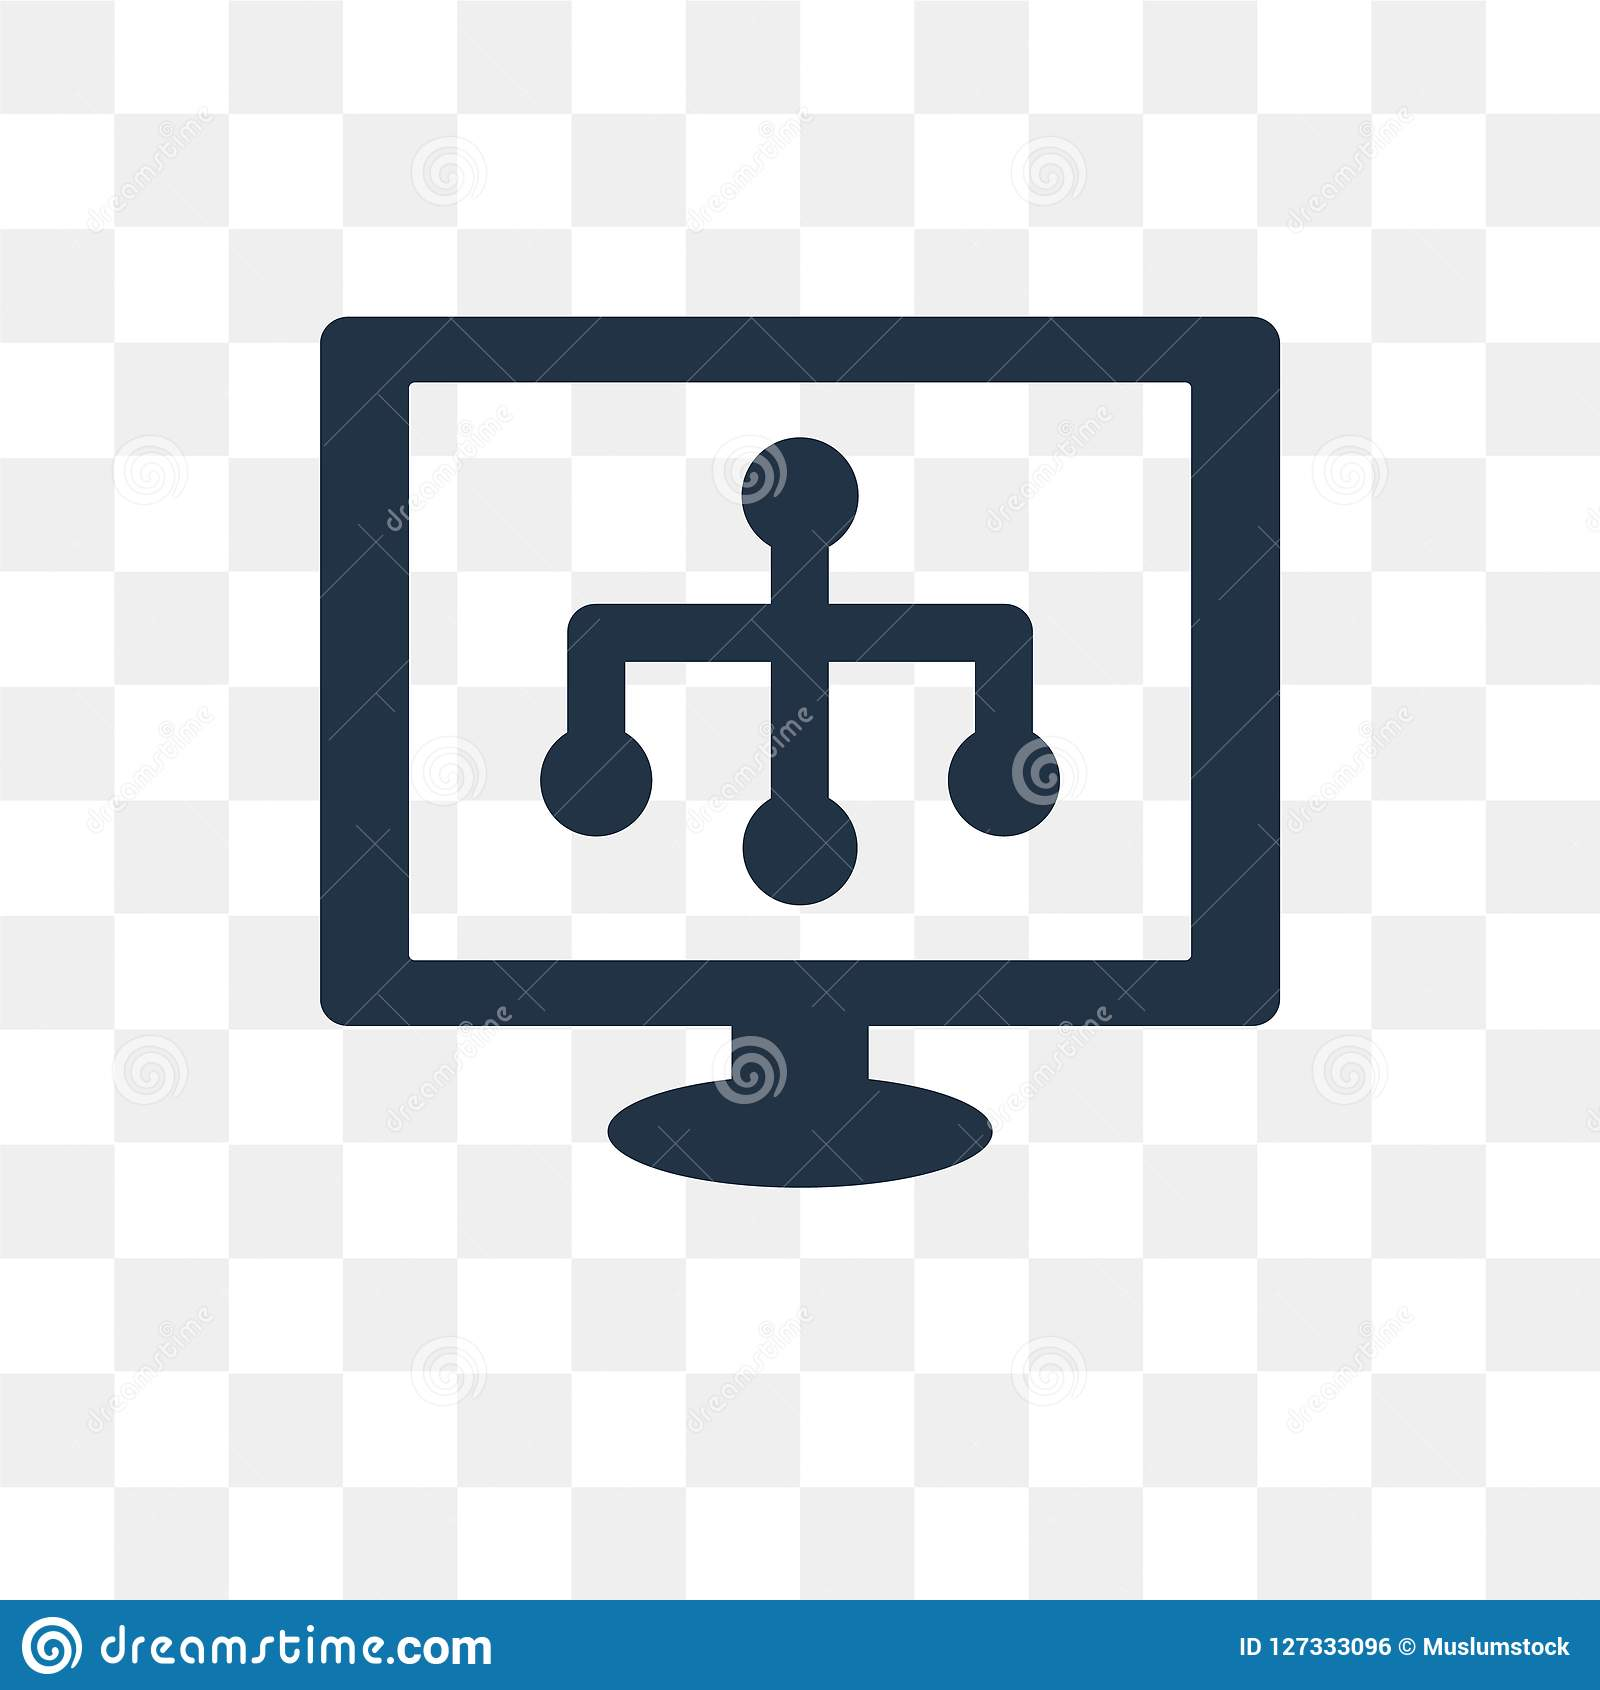 Sitemap vector icon isolated on transparent background, Sitemap